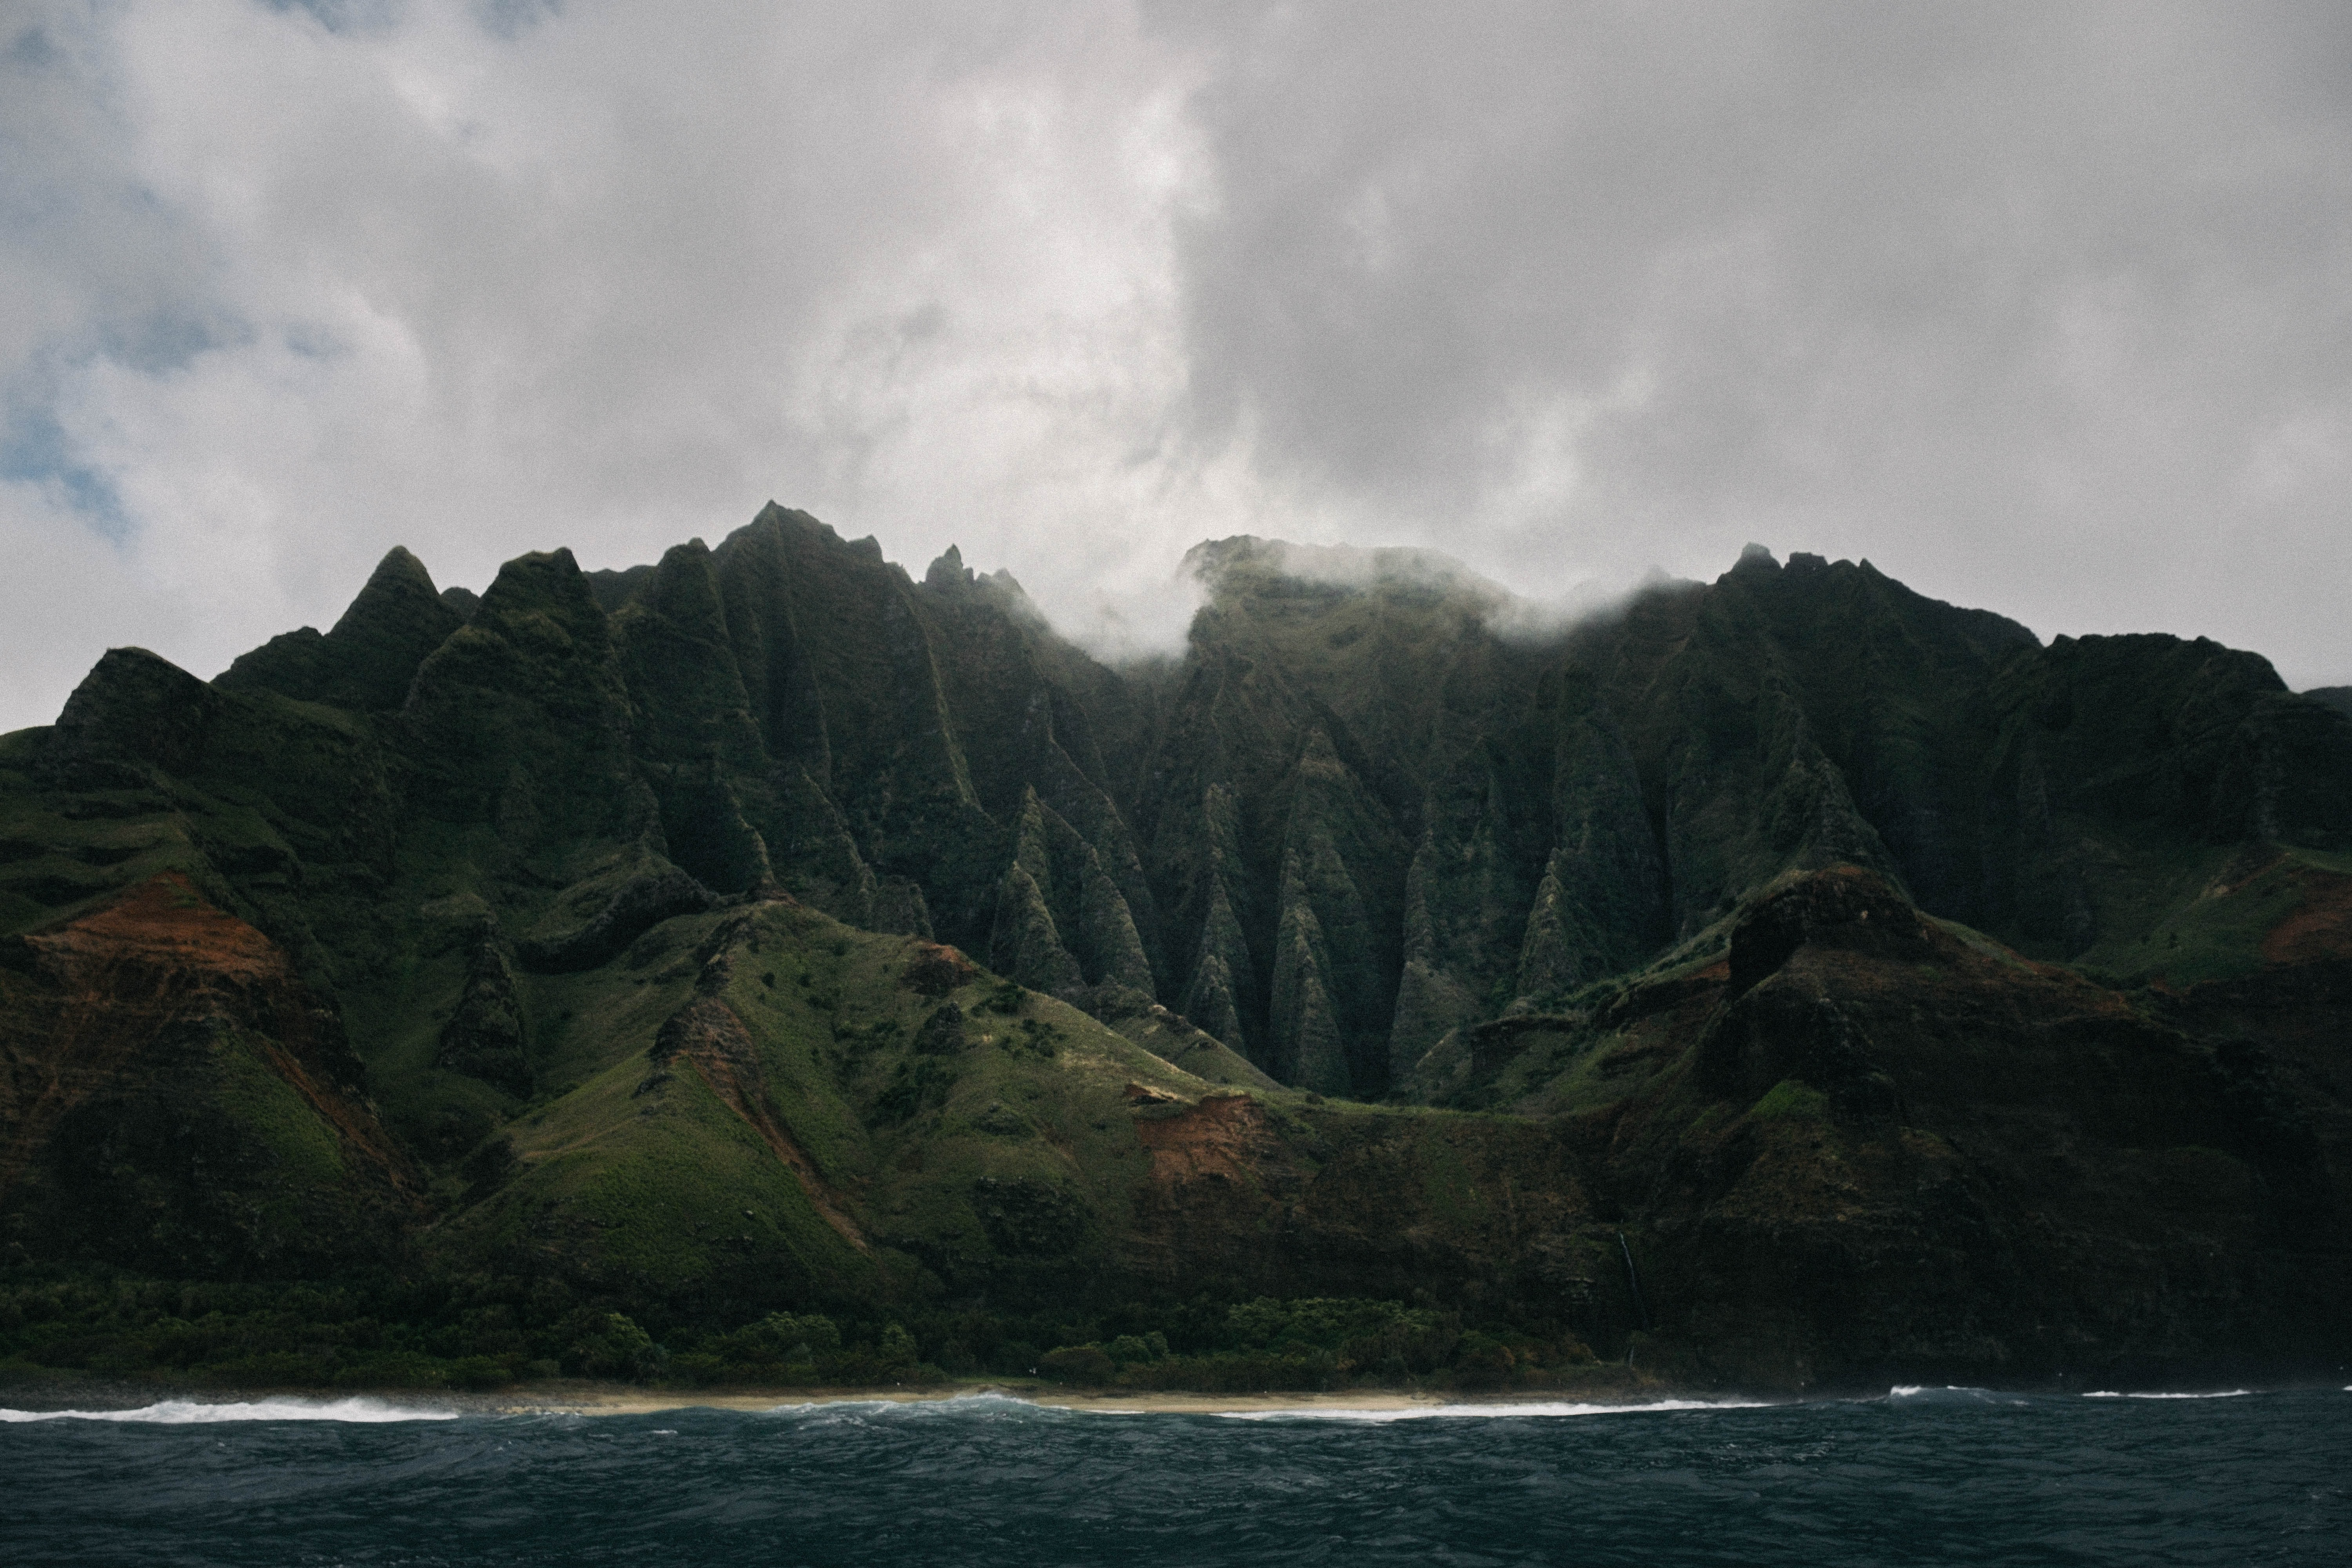 grey clouds hovering above mountain island